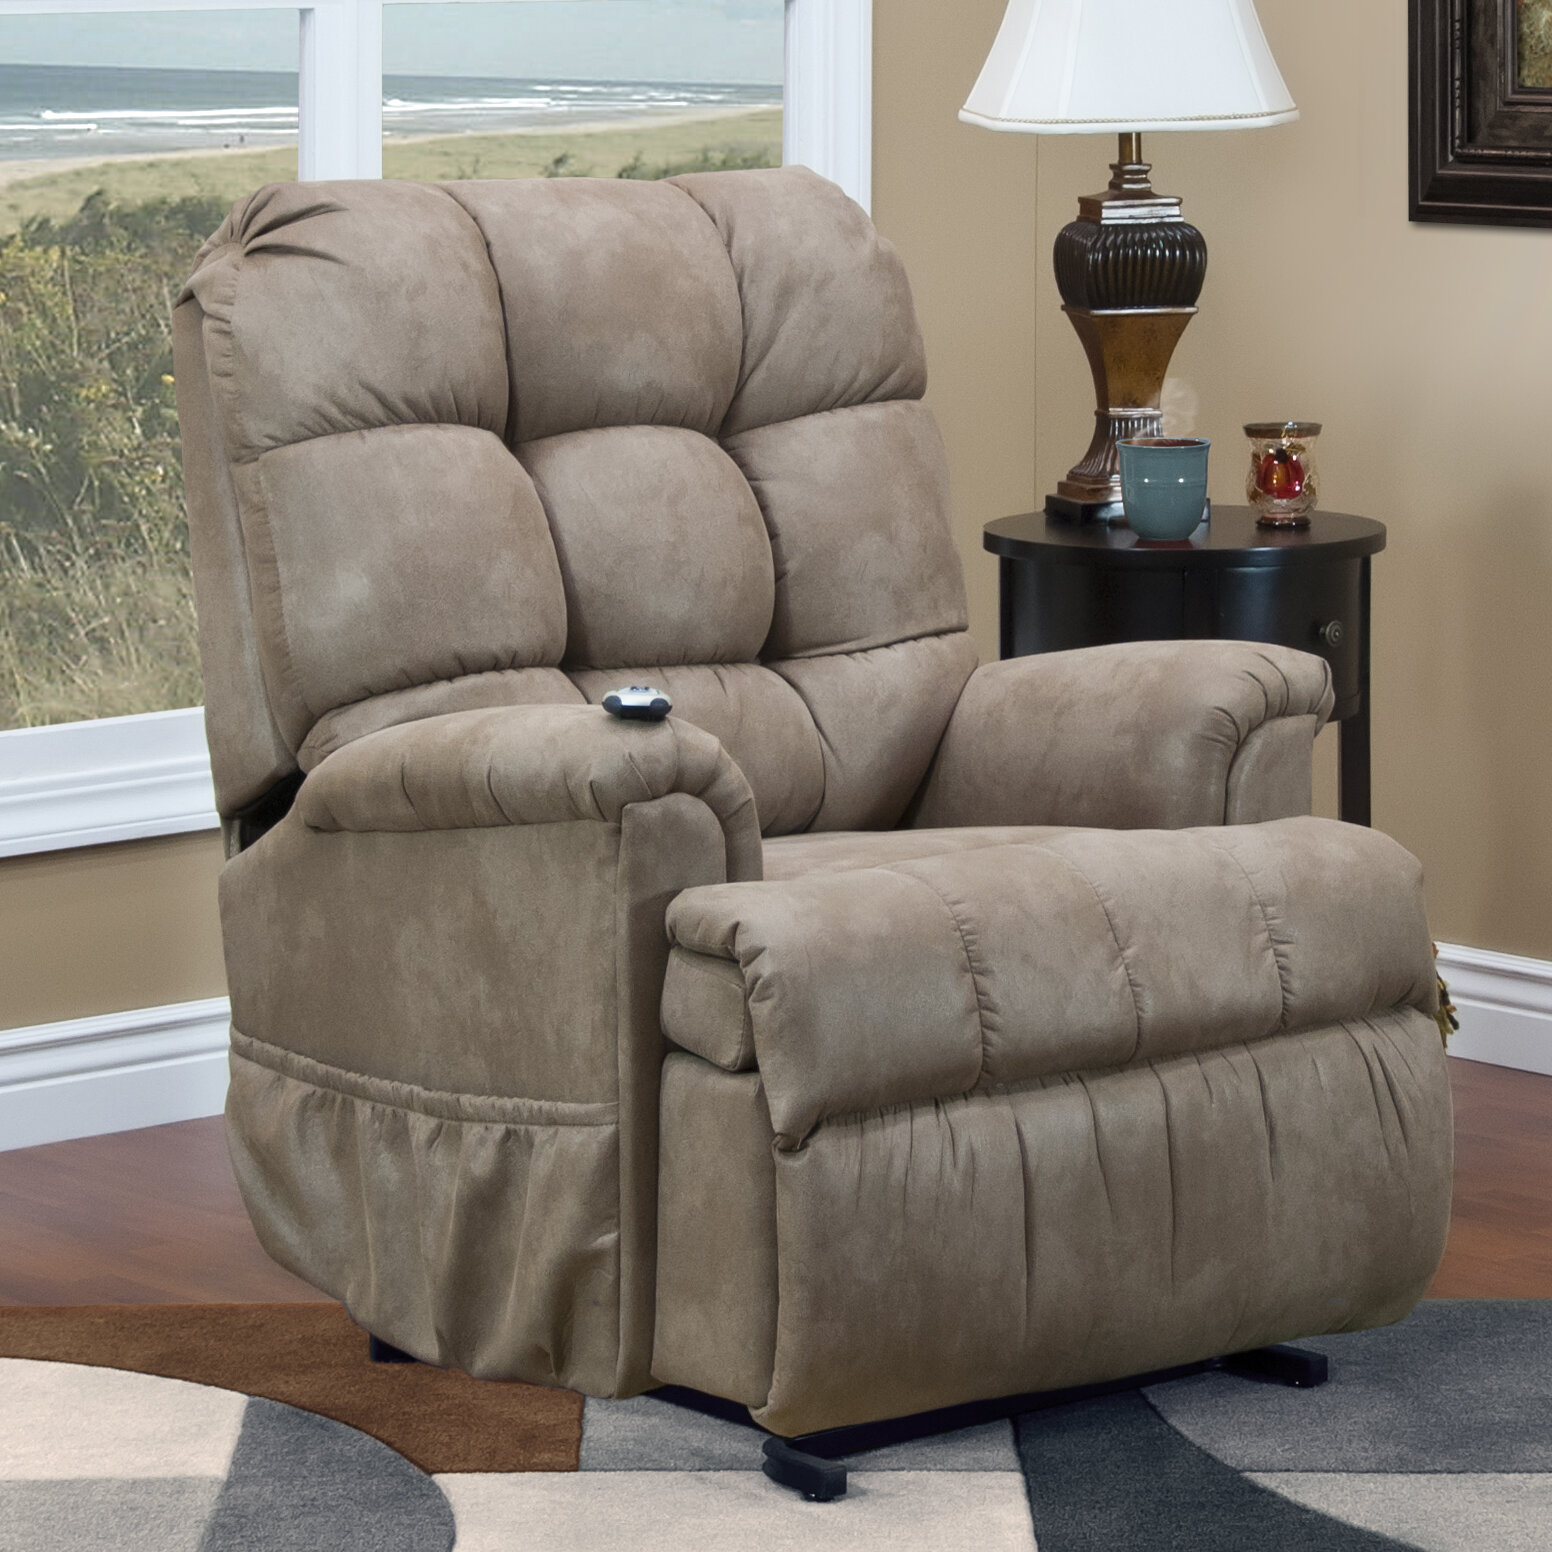 home item best w furnishings height recliners trim rock power pwr threshold with tilt width recliner petite sedgefield headrest rocker products